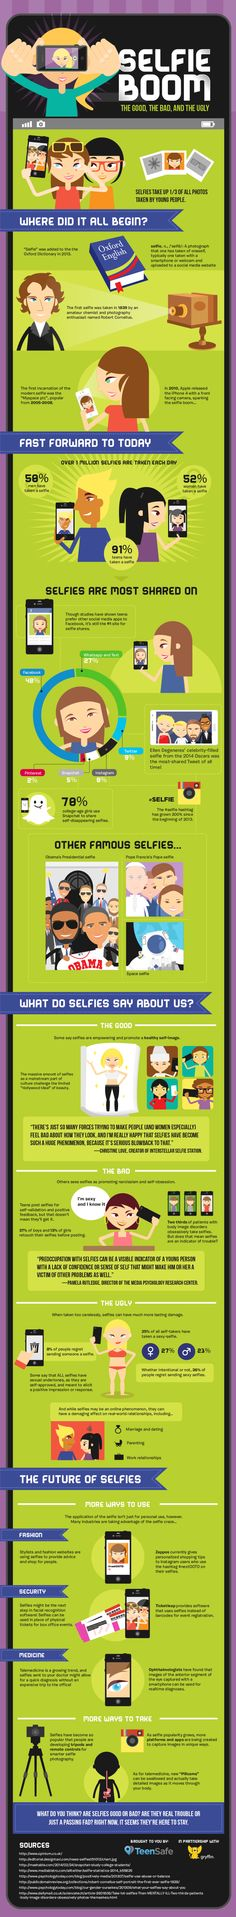 "Selfie Boom: The Good, The Bad, And The Ugly - Infographic Selfies are everywhere. It doesn't matter where you look. Instagram, Google+, Pinterest, Whatsapp, Facebook. Selfies are breaking records and being turned into piece of wall-art. But where did it all begin, and how will it end? Get the answers in this infographic titled ""Selfie Boom: The Good, The Bad, and the Ugly"" which comes courtesy of +Teen Safe."